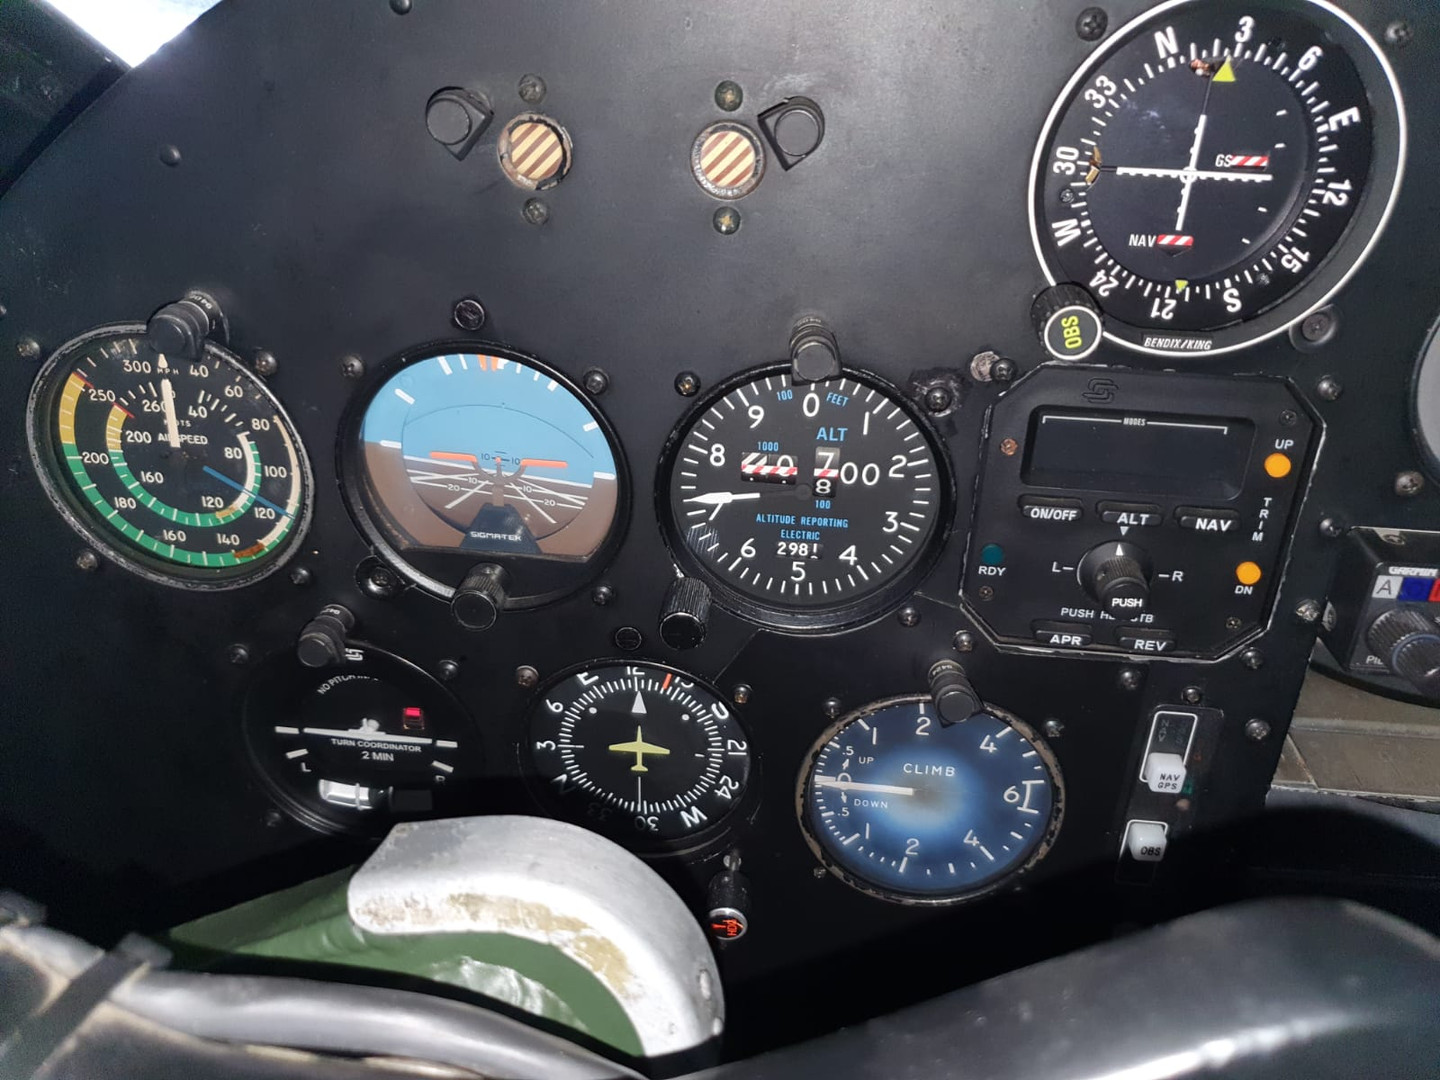 LH side of instrument panel N9550Z